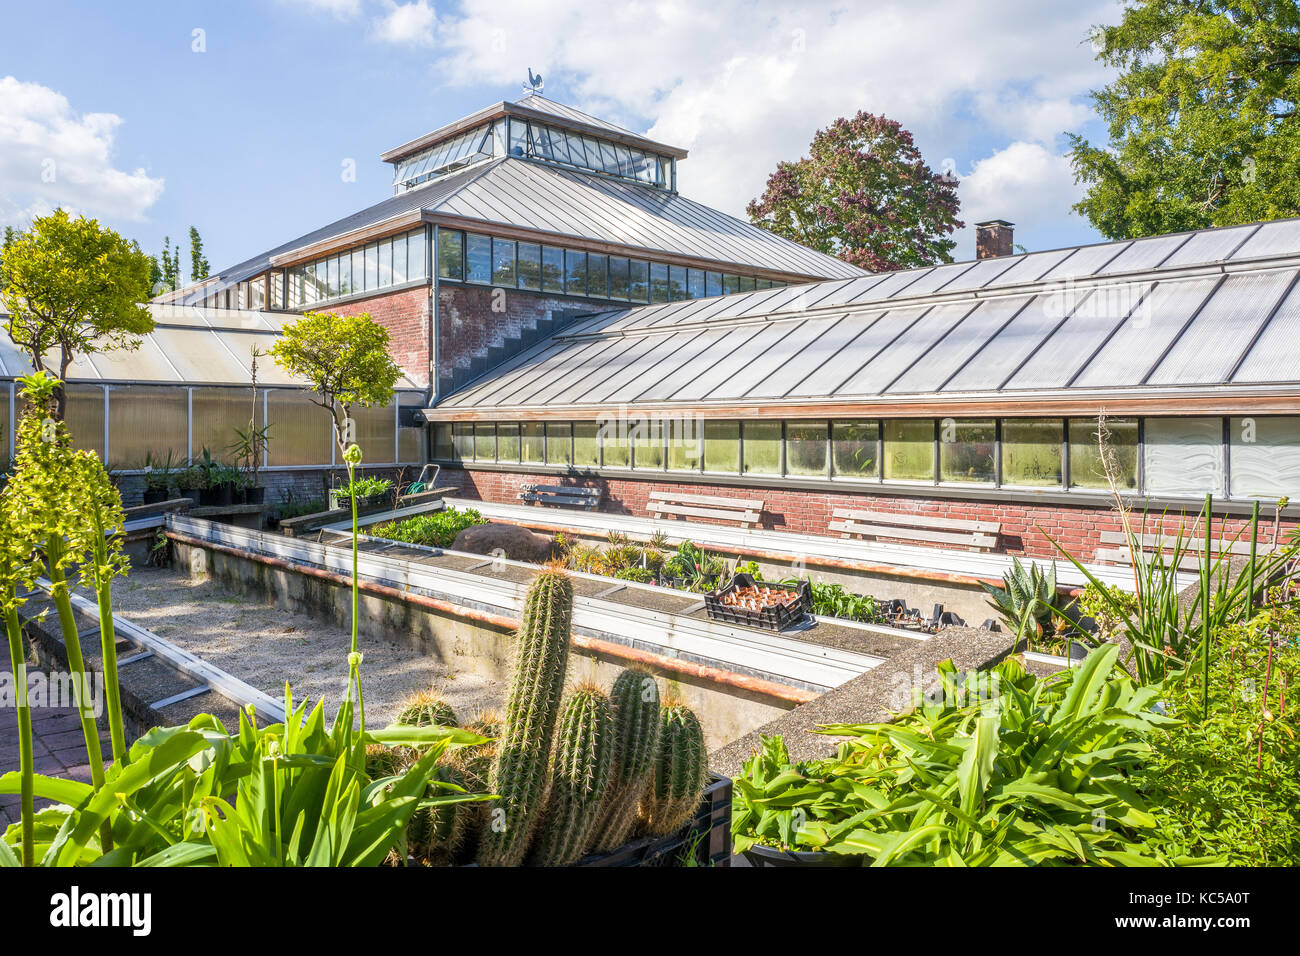 NETHERLANDS   LEIDEN   SEPTEMBER 23, 2017: Historic Greenhouse In The  Hortus Botanicus, Botanical Garden In Leiden, Netherlands.